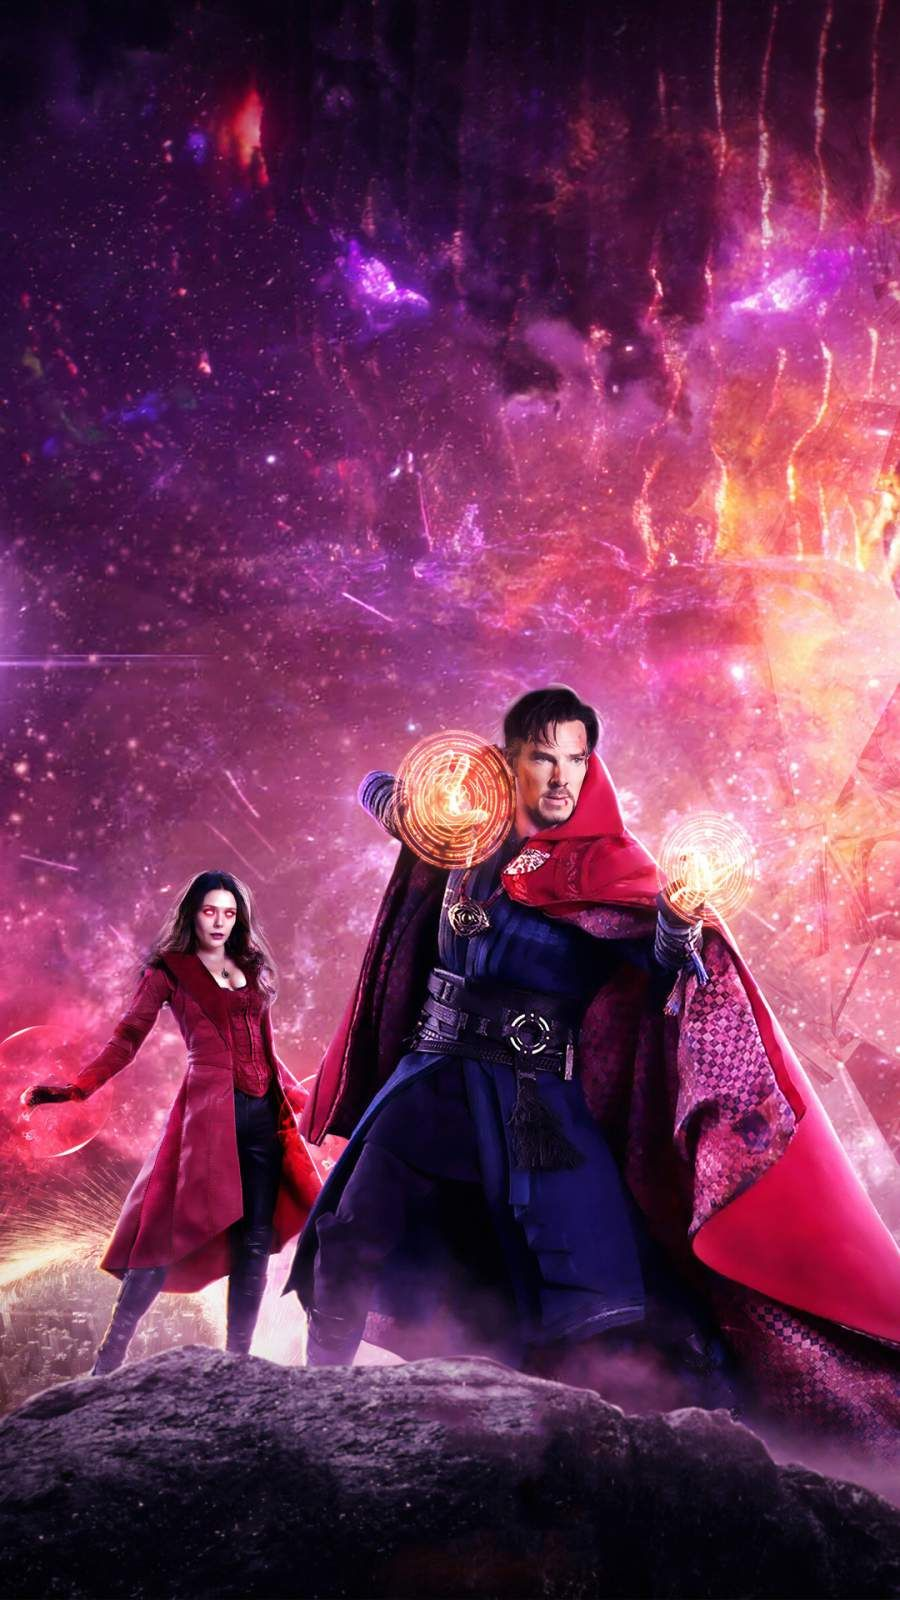 Doctor Strange in the Multiverse of Madness Art iPhone Wallpaper 900x1600